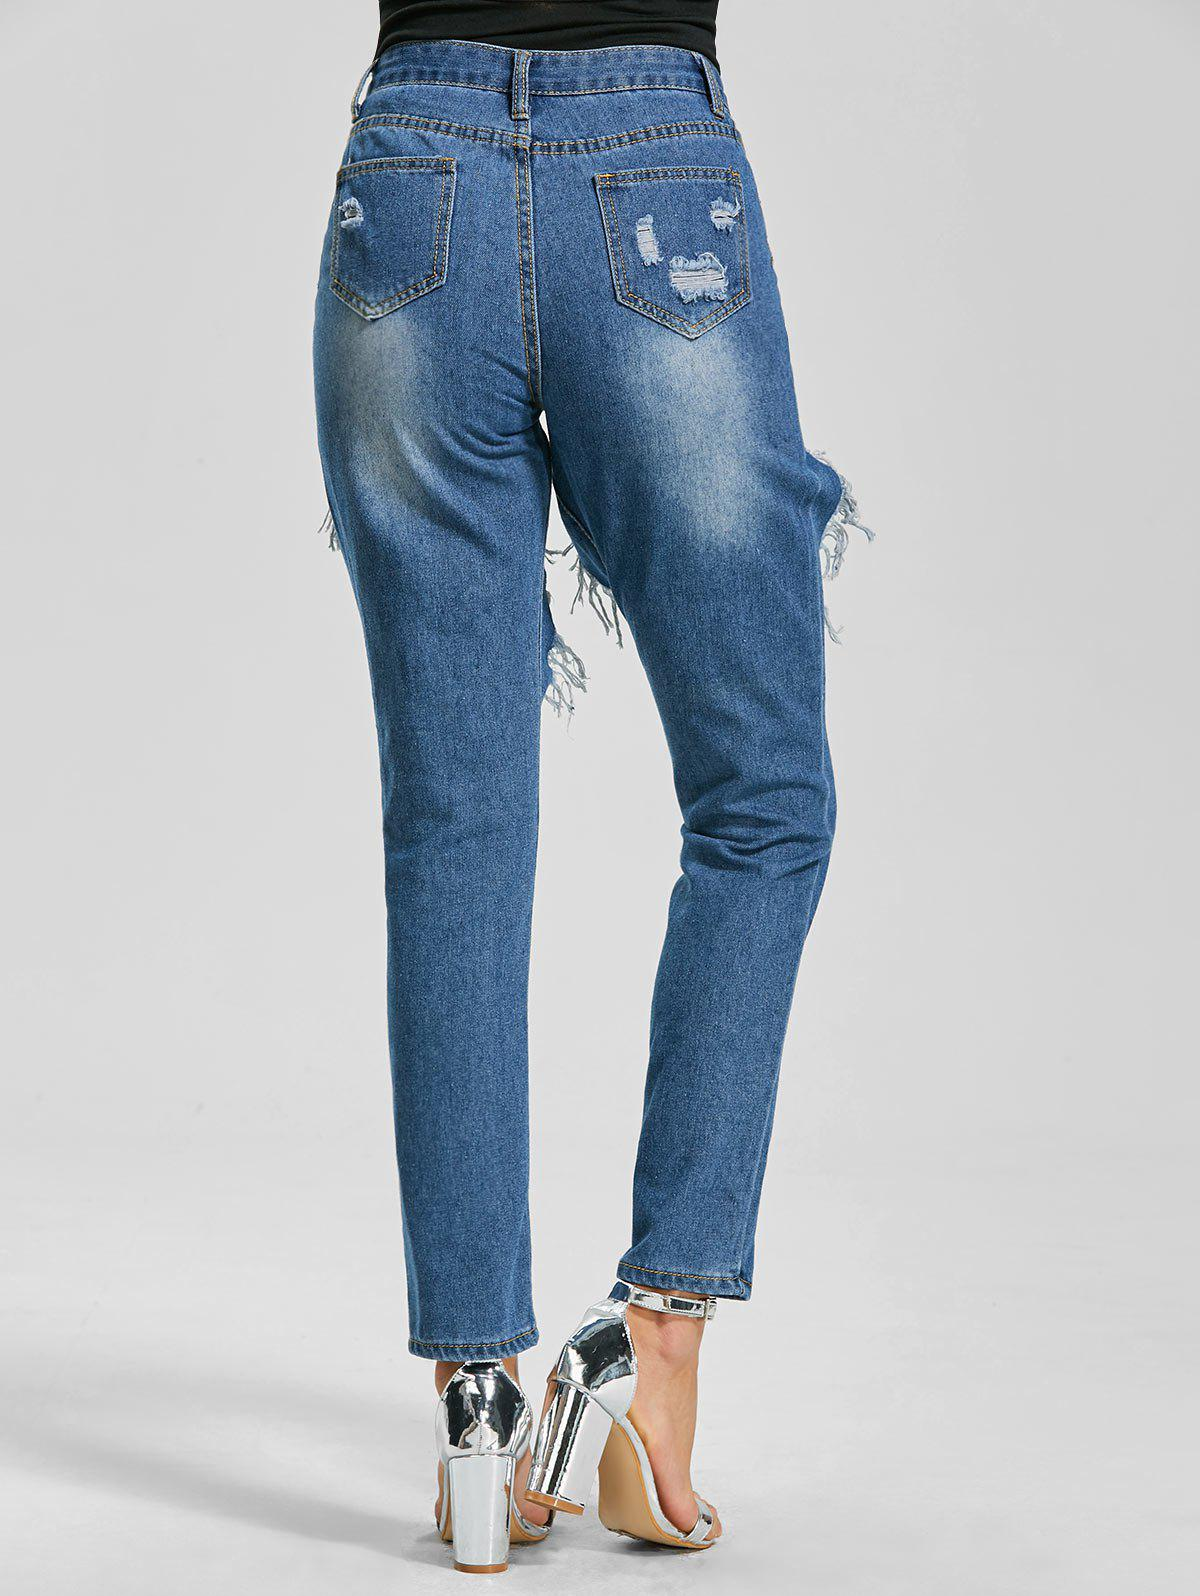 Cut Out Ankle Length Ripped Jeans - BLUE XL